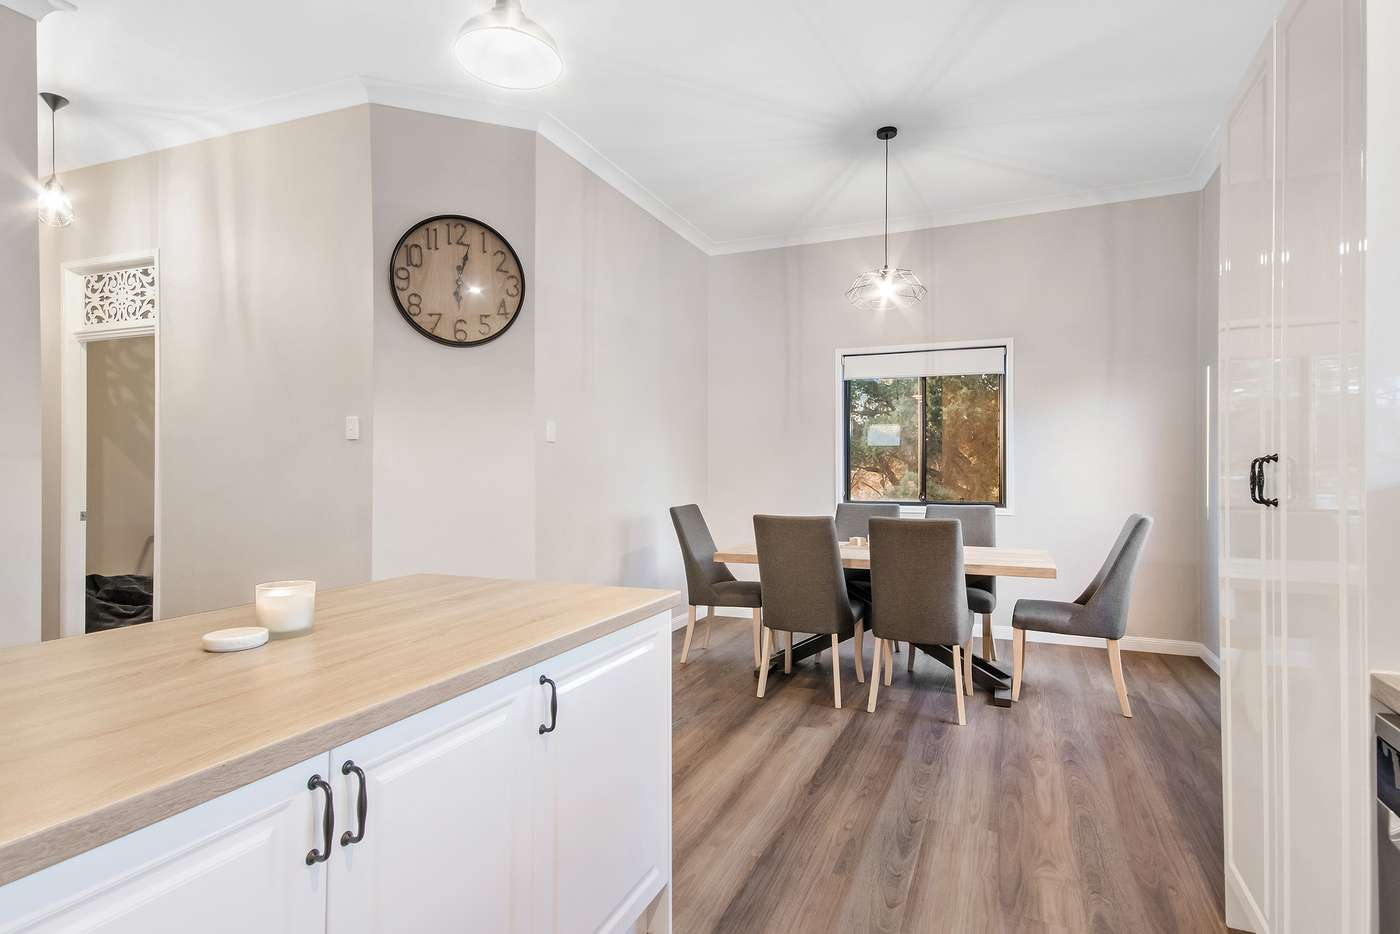 Sixth view of Homely house listing, 15 Blackwood Street, East Ipswich QLD 4305